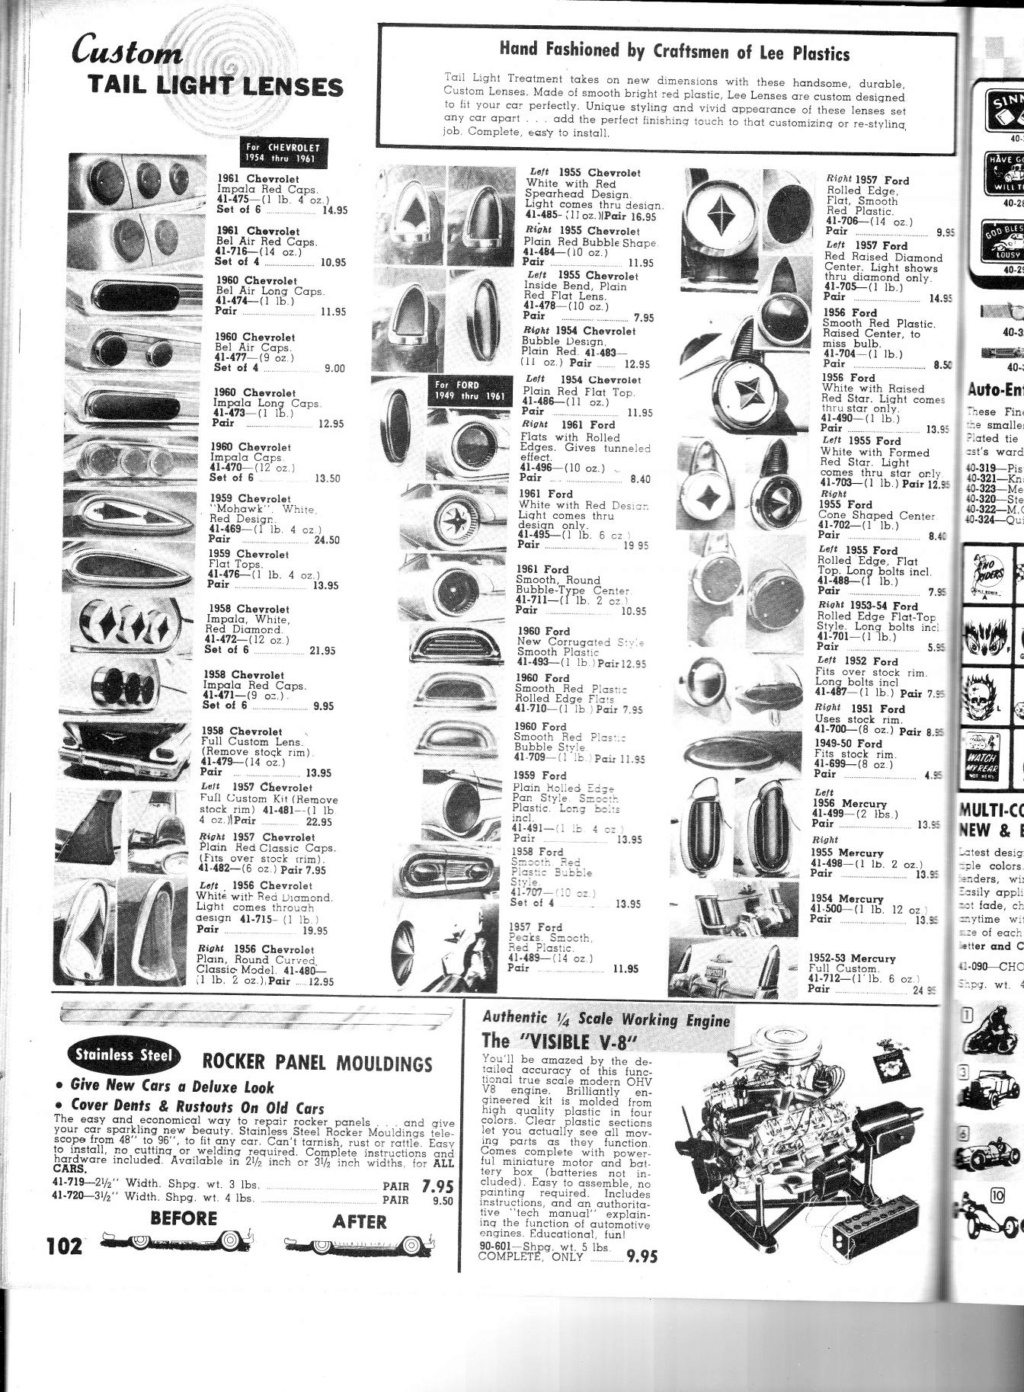 Almquist catalog, Speed, Mileage, Customizing, Performance - World's largest supplier of hi-performance equipement -  1963 Img_0016